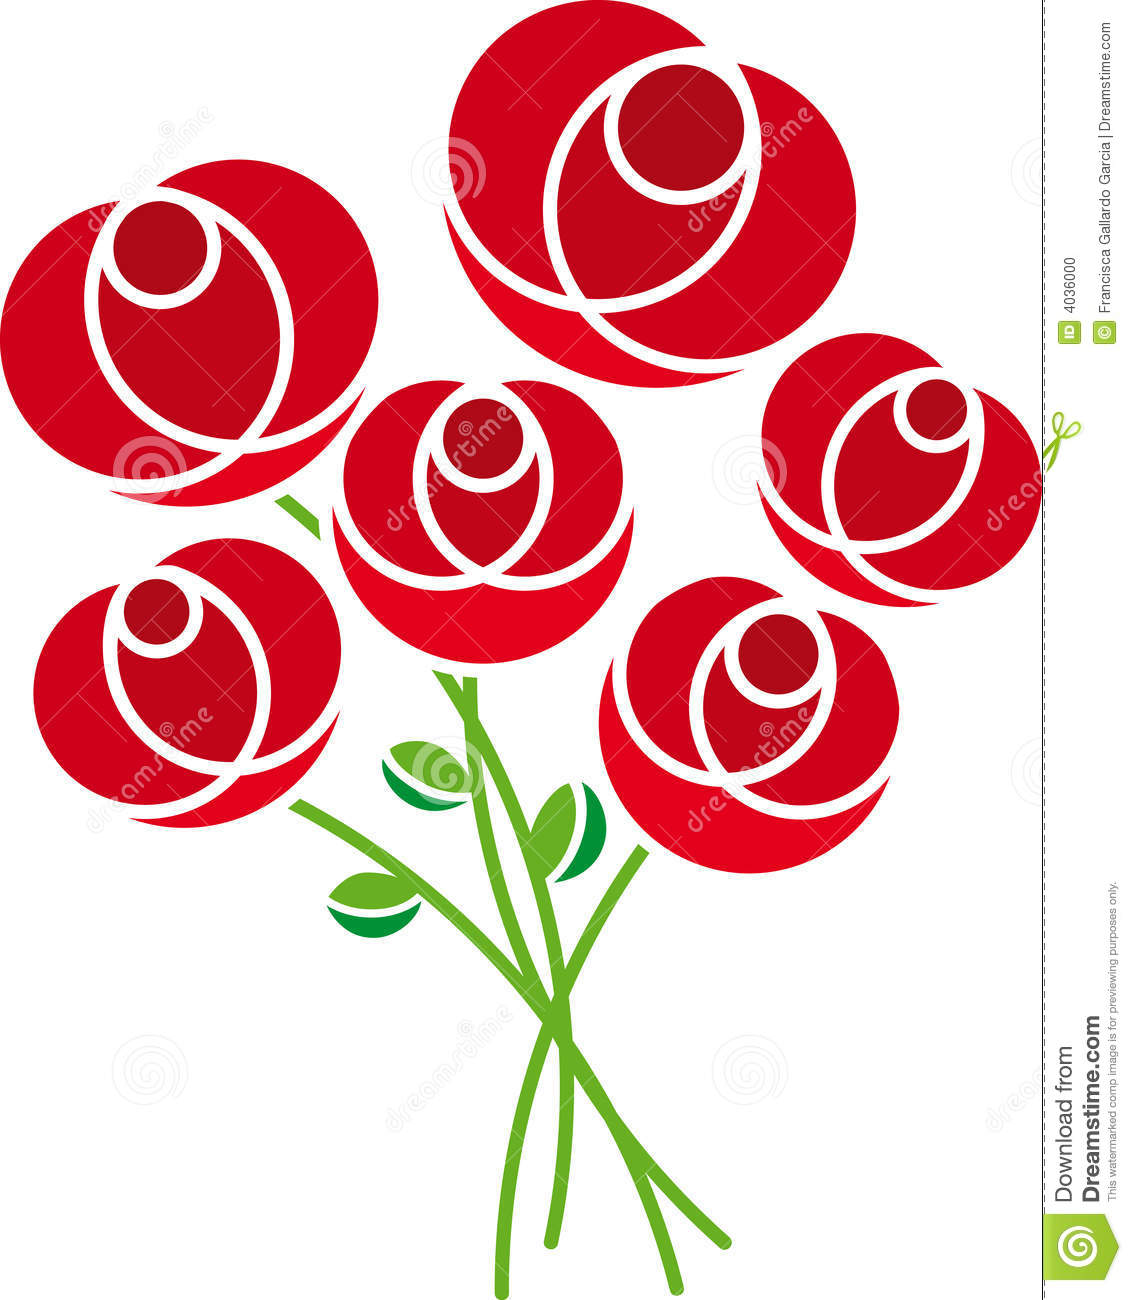 Roses (vector) Stock Photo - Image: 4036000